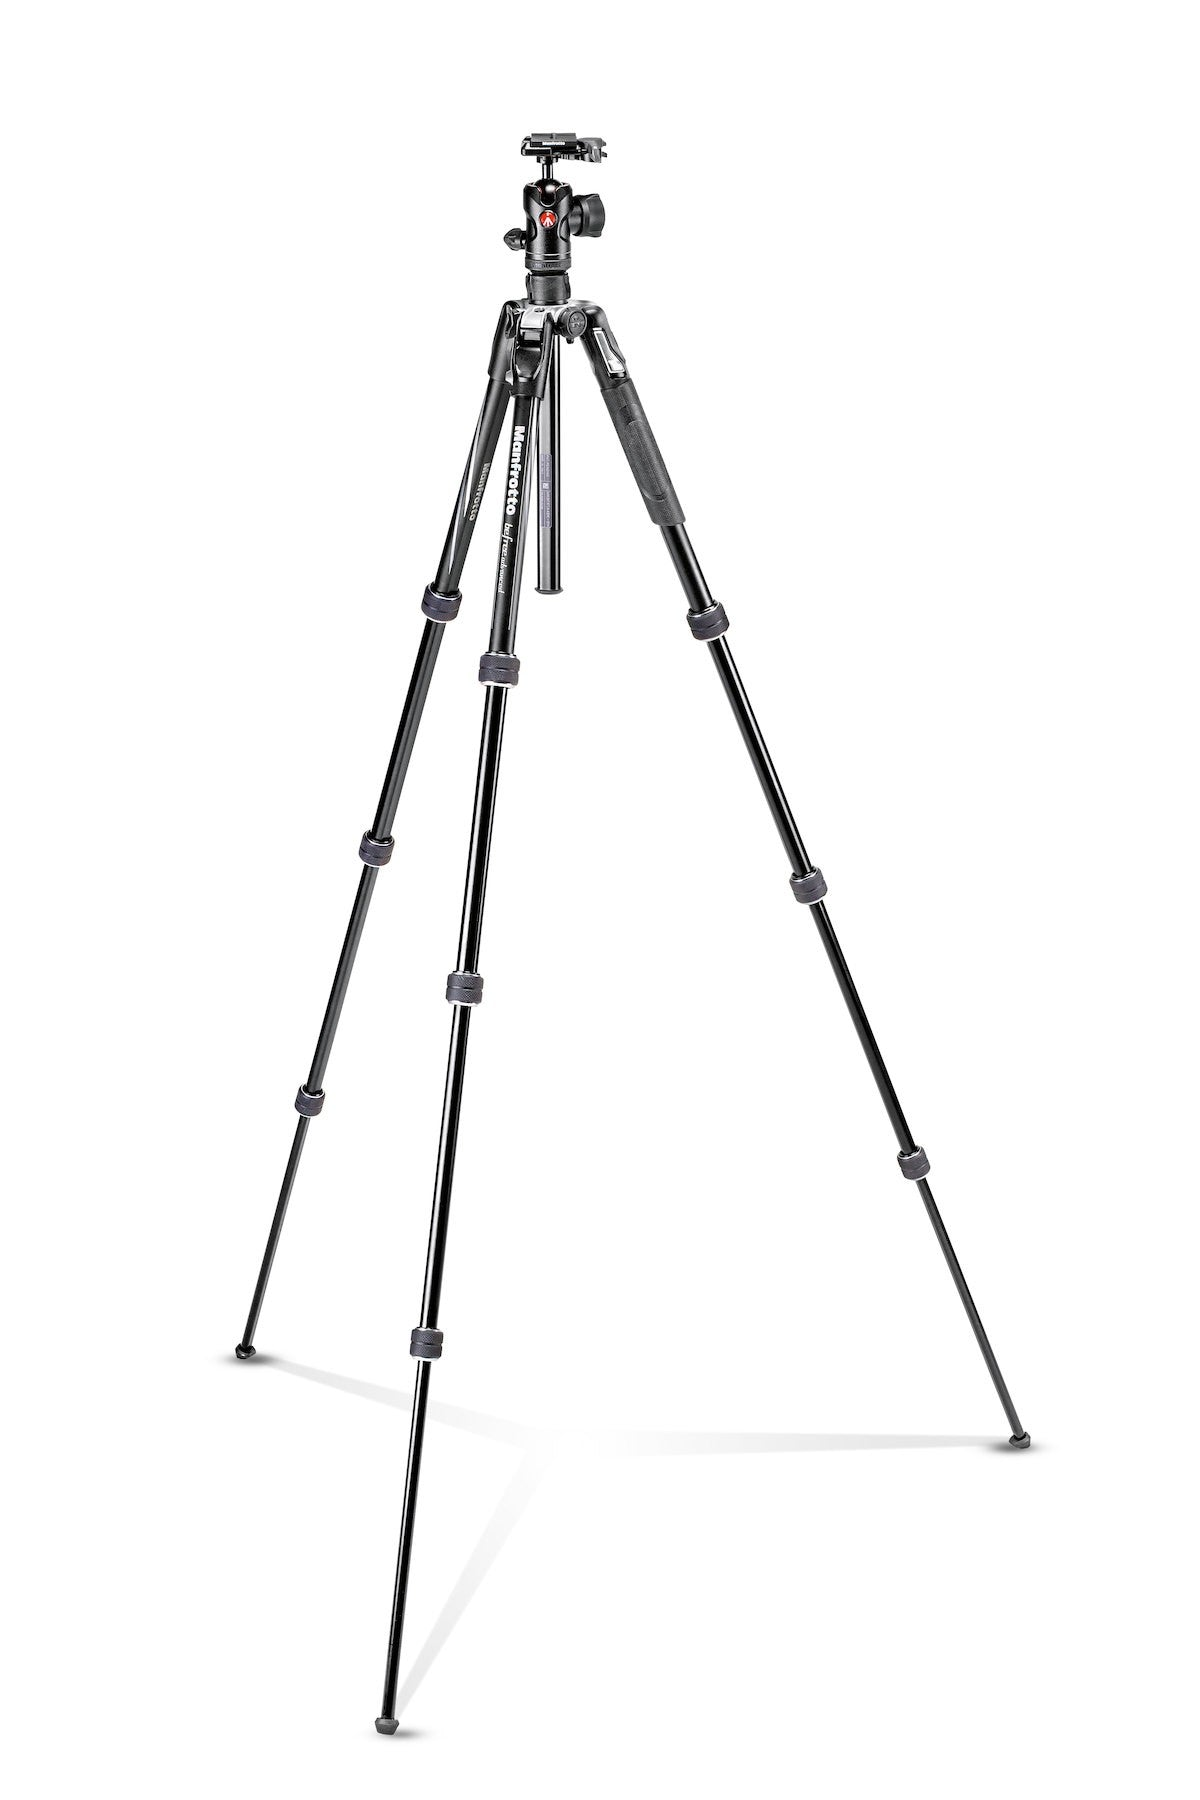 Manfrotto Befree Advanced Aluminum Travel Tripod with Ball Head - Black